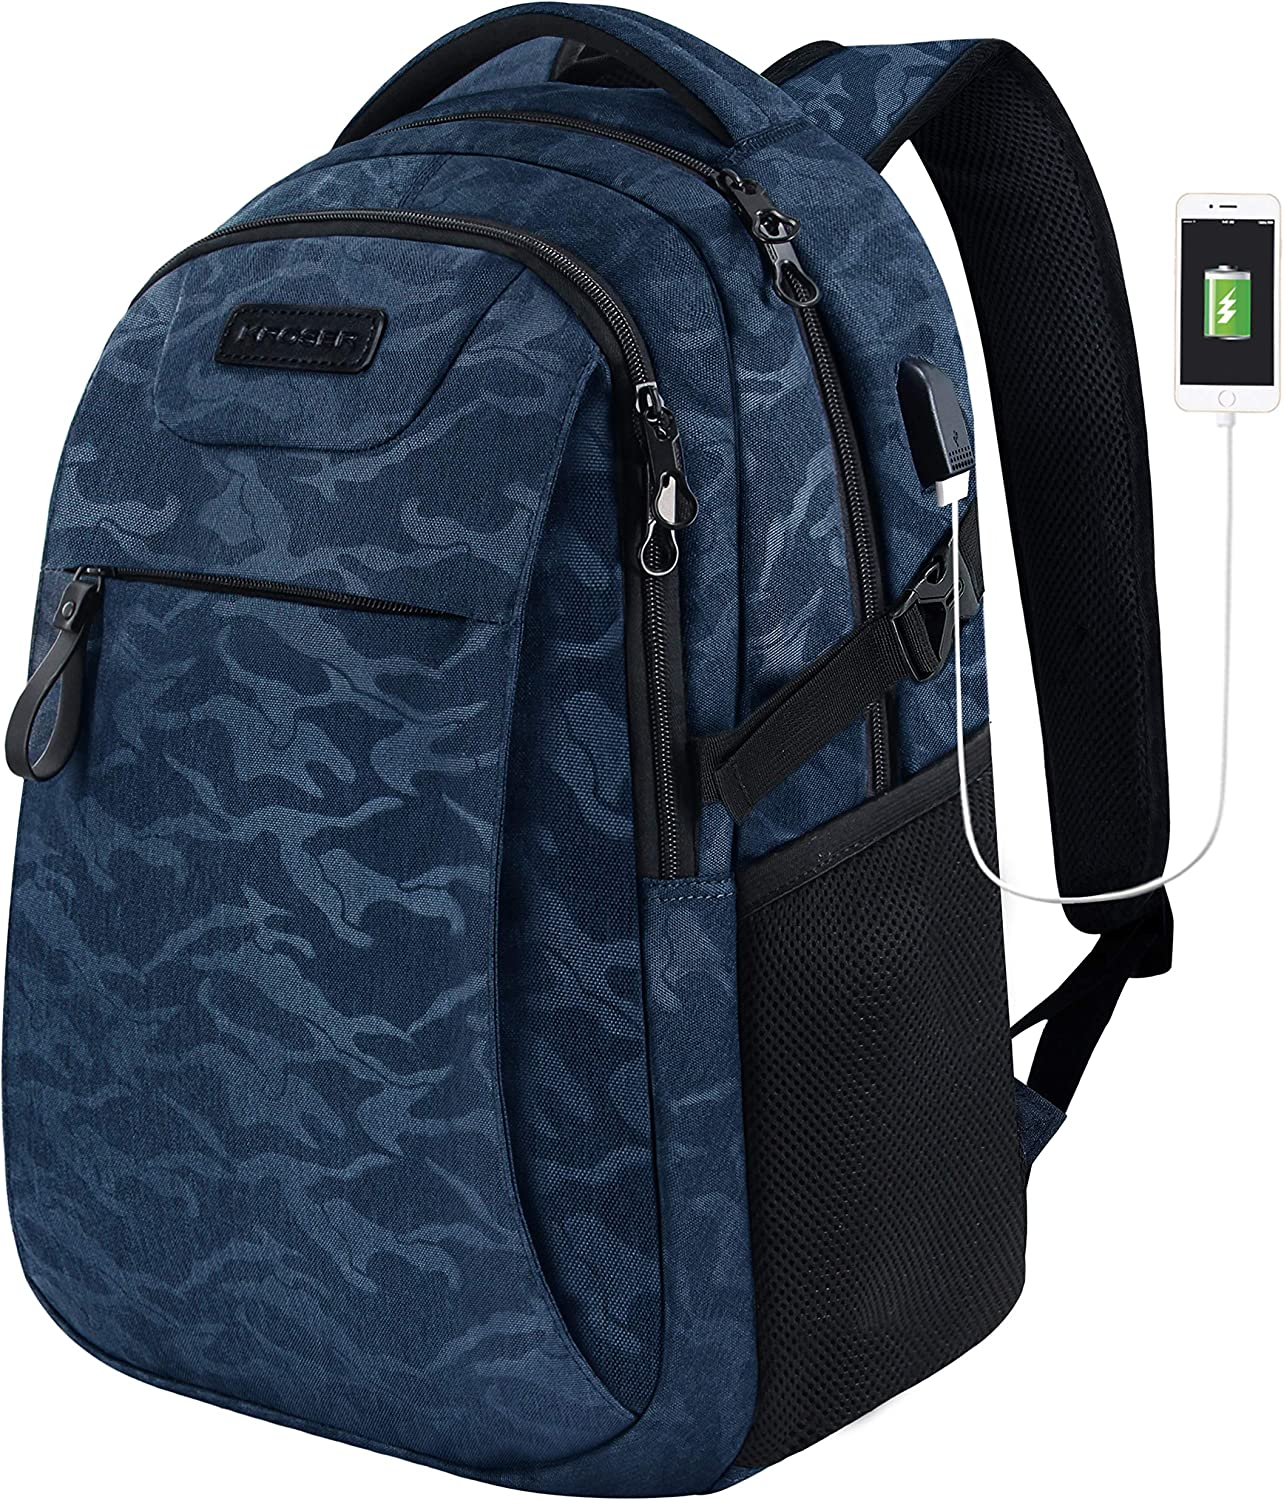 KROSER Laptop Backpack for 15.6 Inch Travel Business Computer Backpack with USB Charging Port Water-Repellent College School Casual Daypack for Men/Women-Camouflage Blue